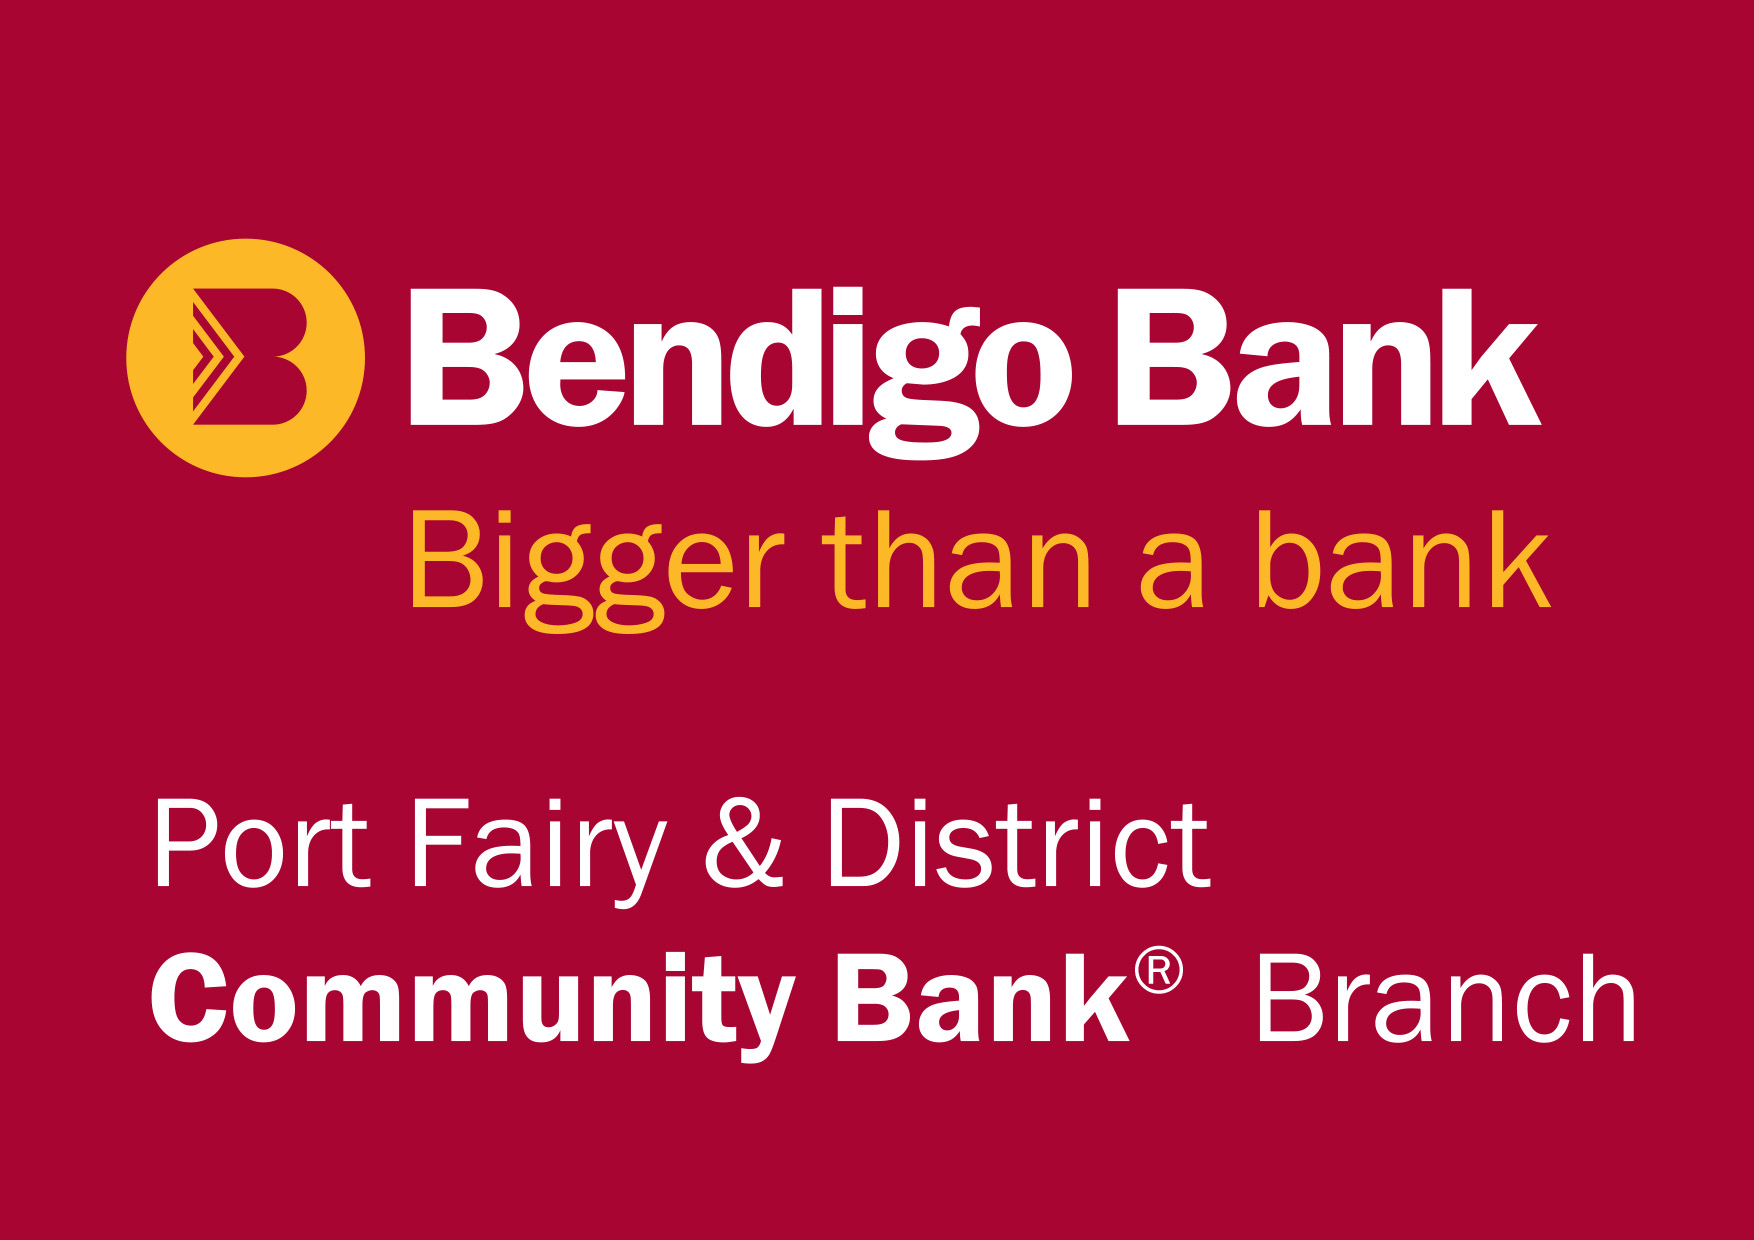 Port Fairy & District Community Bank